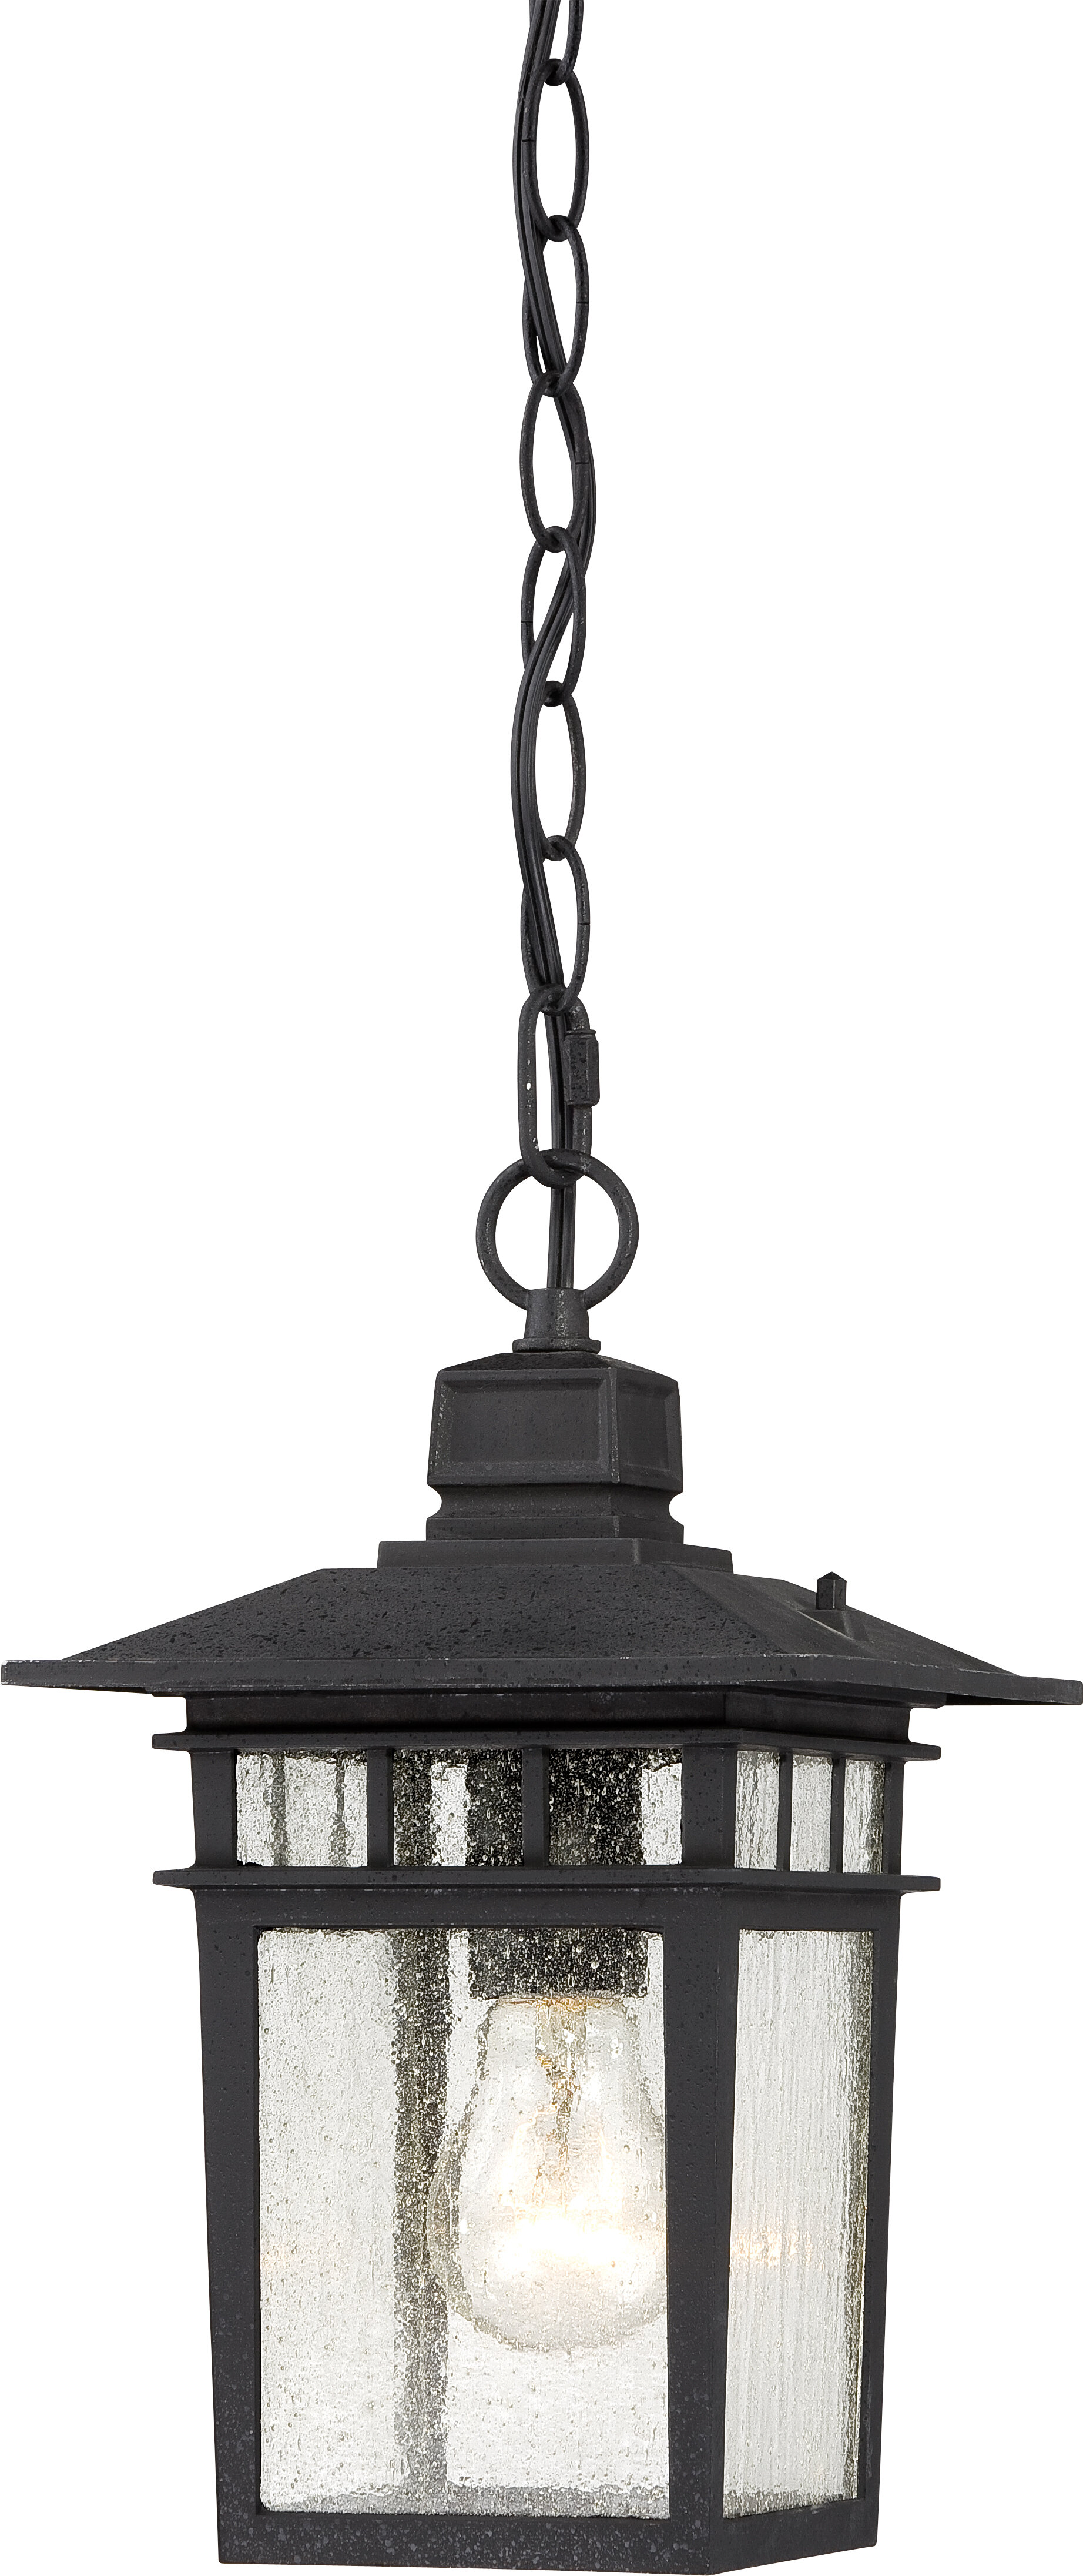 Porch Outdoor Hanging Lights You Ll Love In 2021 Wayfair